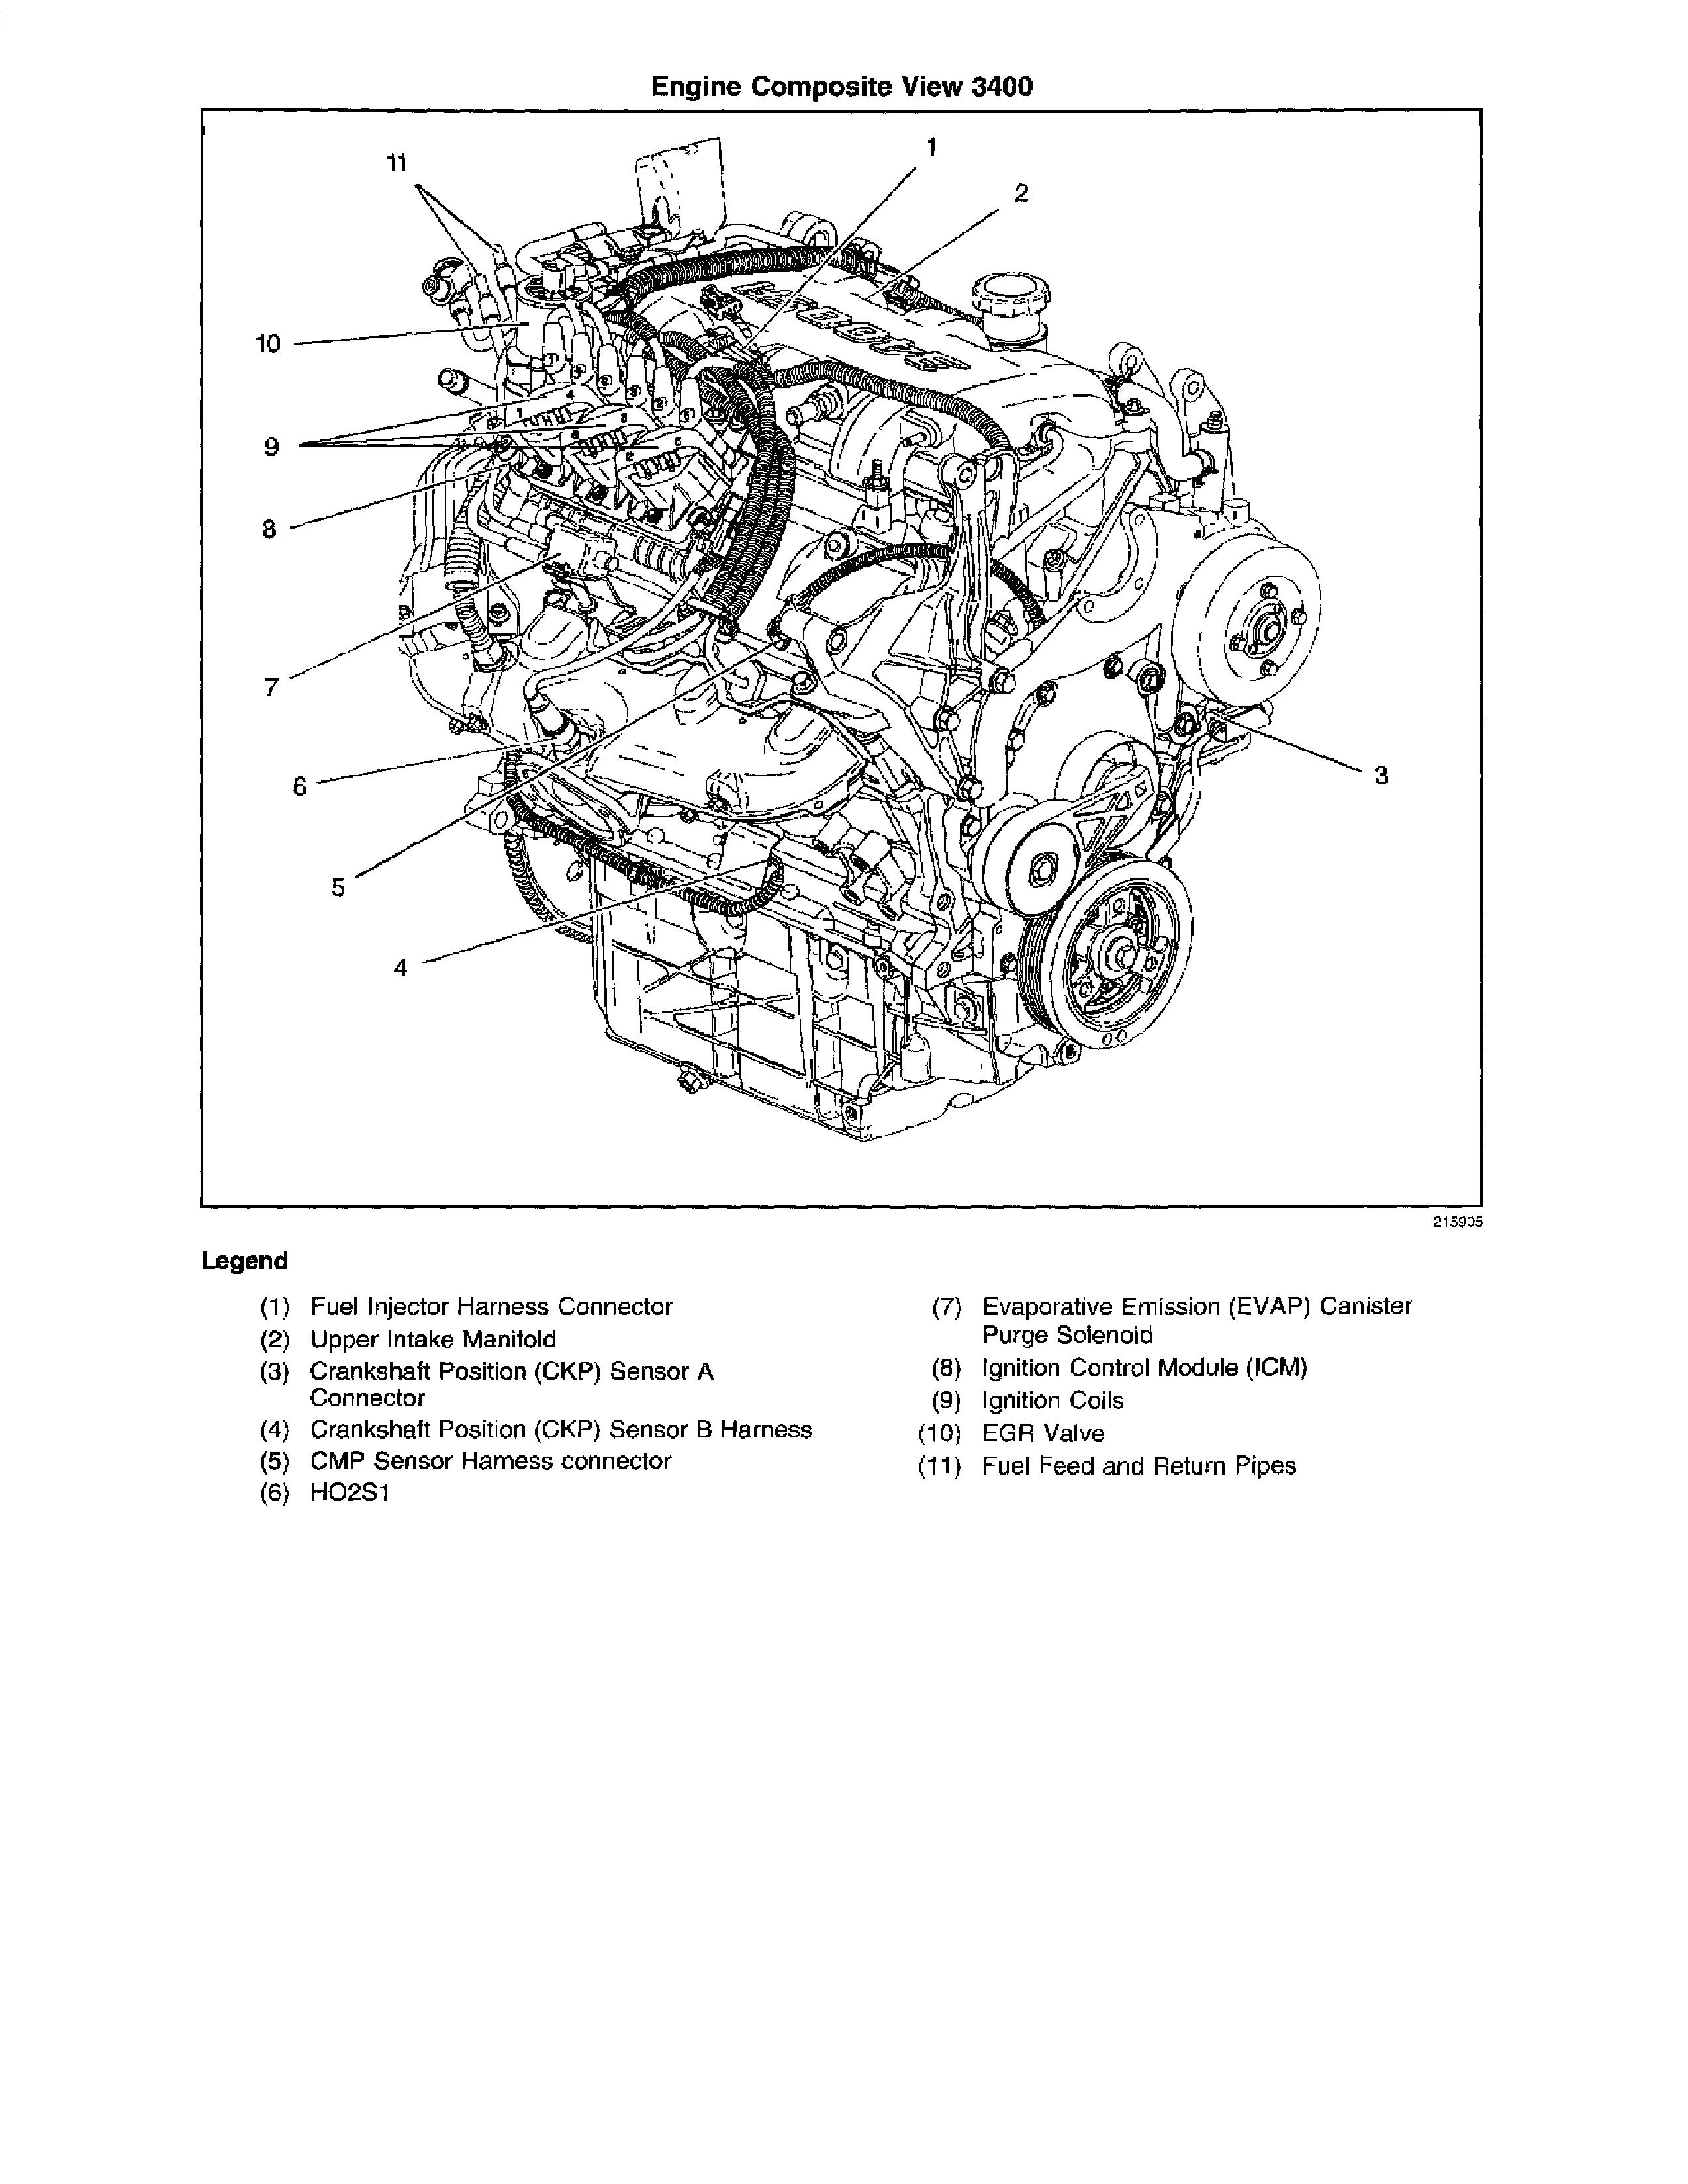 We Have A 2002 Pontiac Montana Which Is Showing An Ignition Control Circuit Problem  The Number